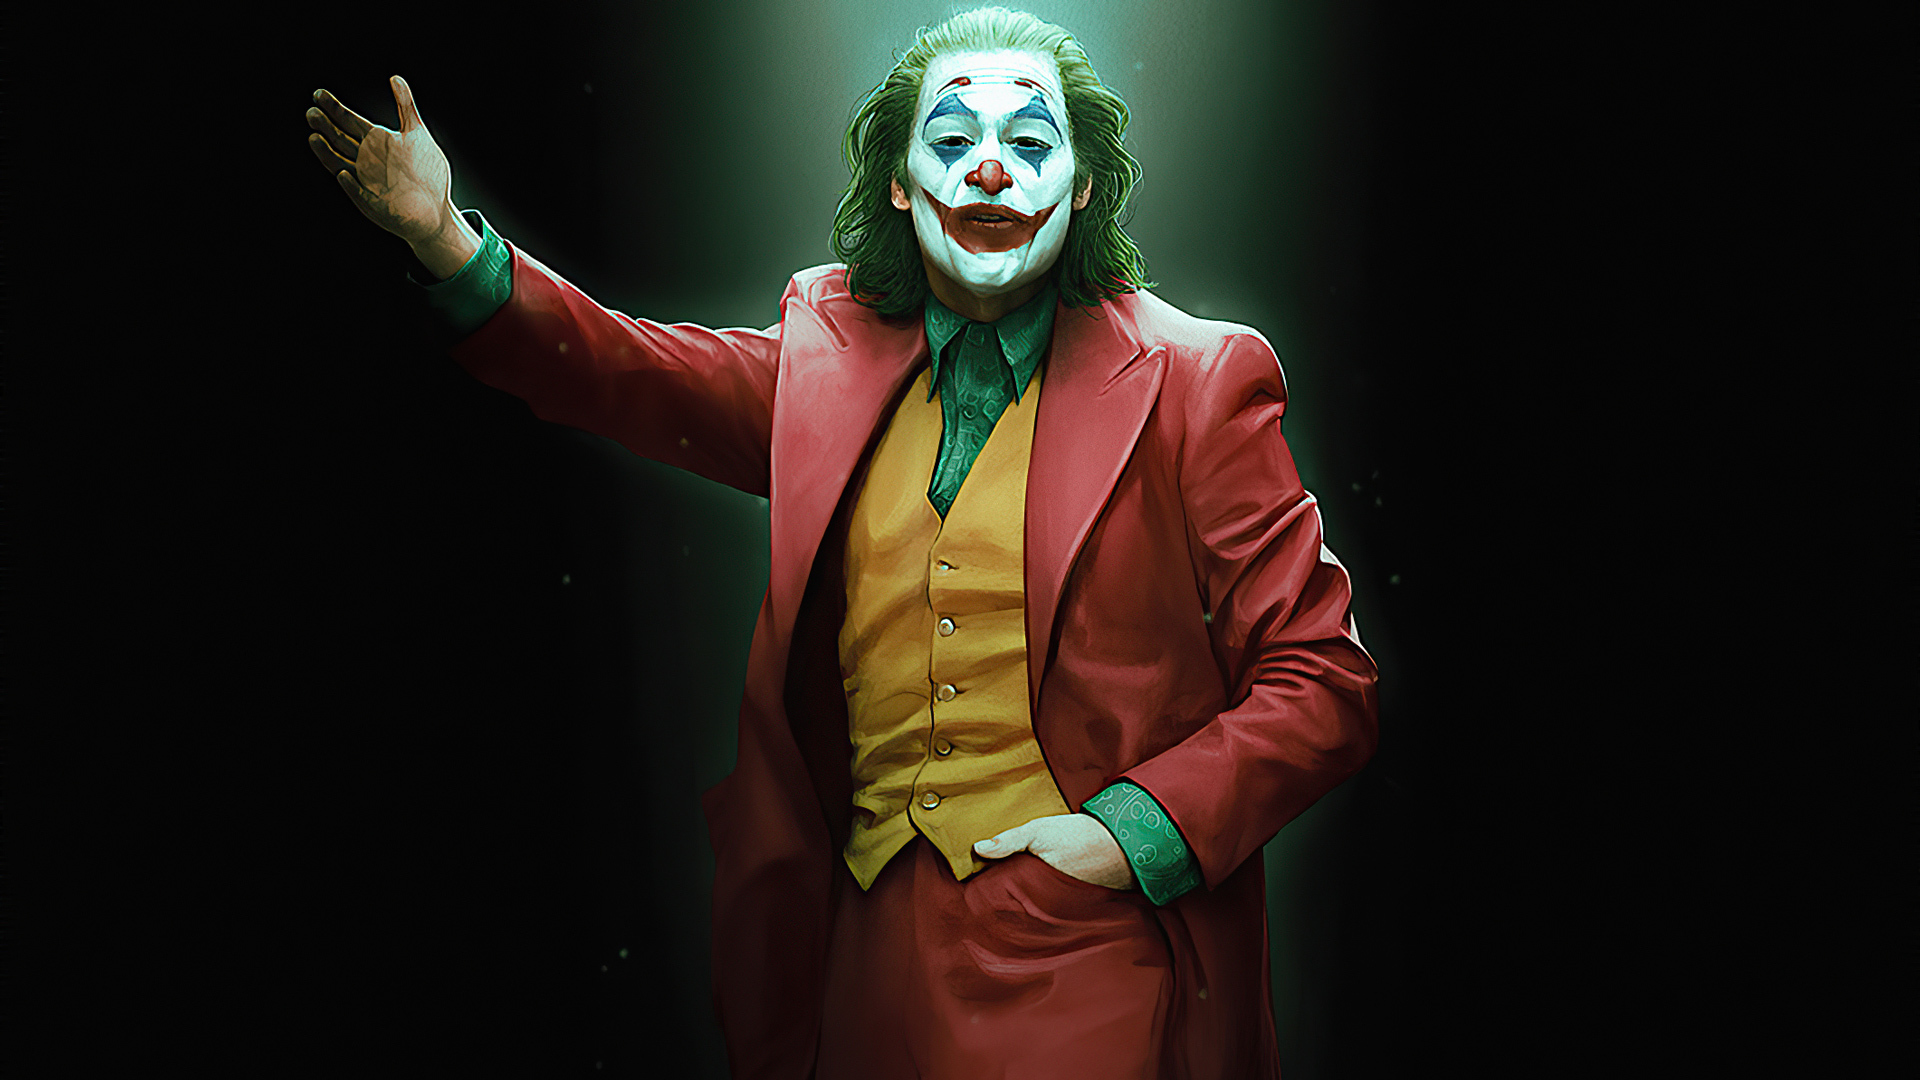 Joker Welcome You Full HD Wallpaper For PC and Mobile